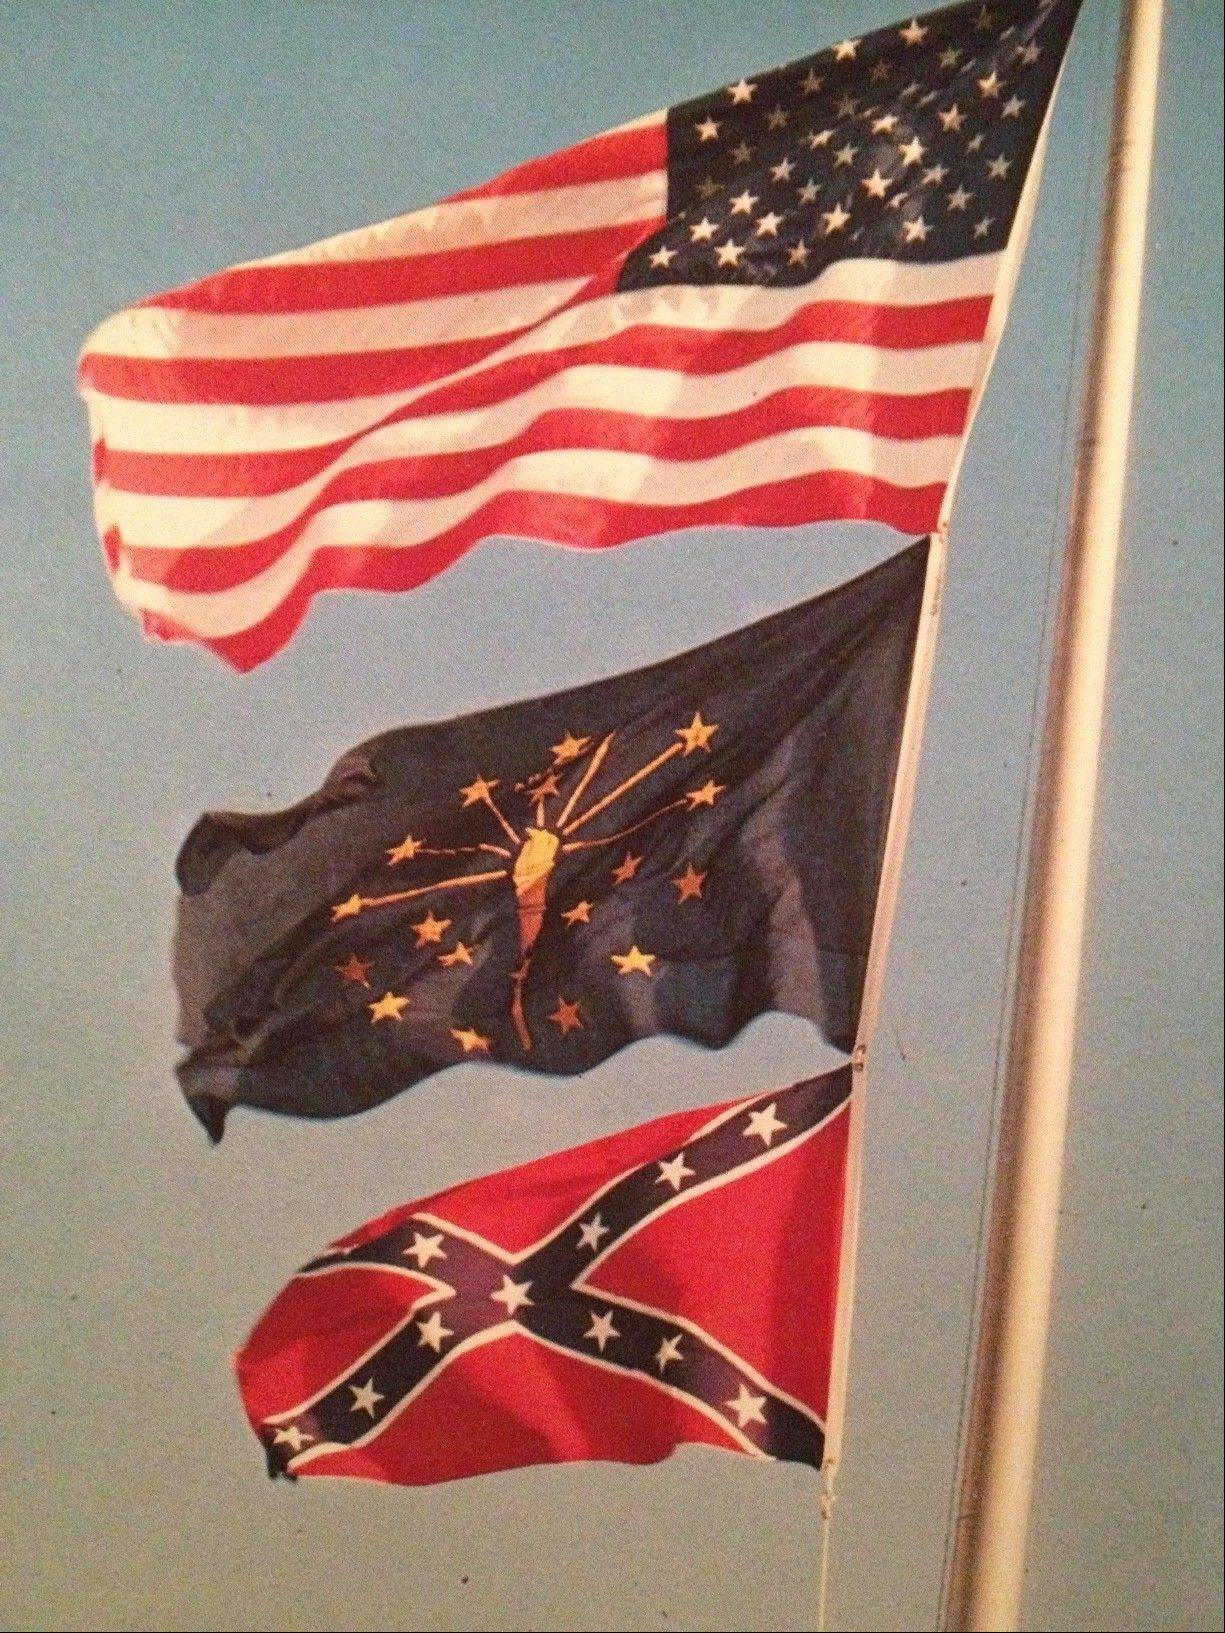 As a high school student in the 1970s, I was bothered that my school's Stars and Bars joined the flags of my state and country on my high school's flagpole. That confederate flag did go perfectly with our Rebel mascot, but it always reminded me that our Rebels nickname came from the losing side.